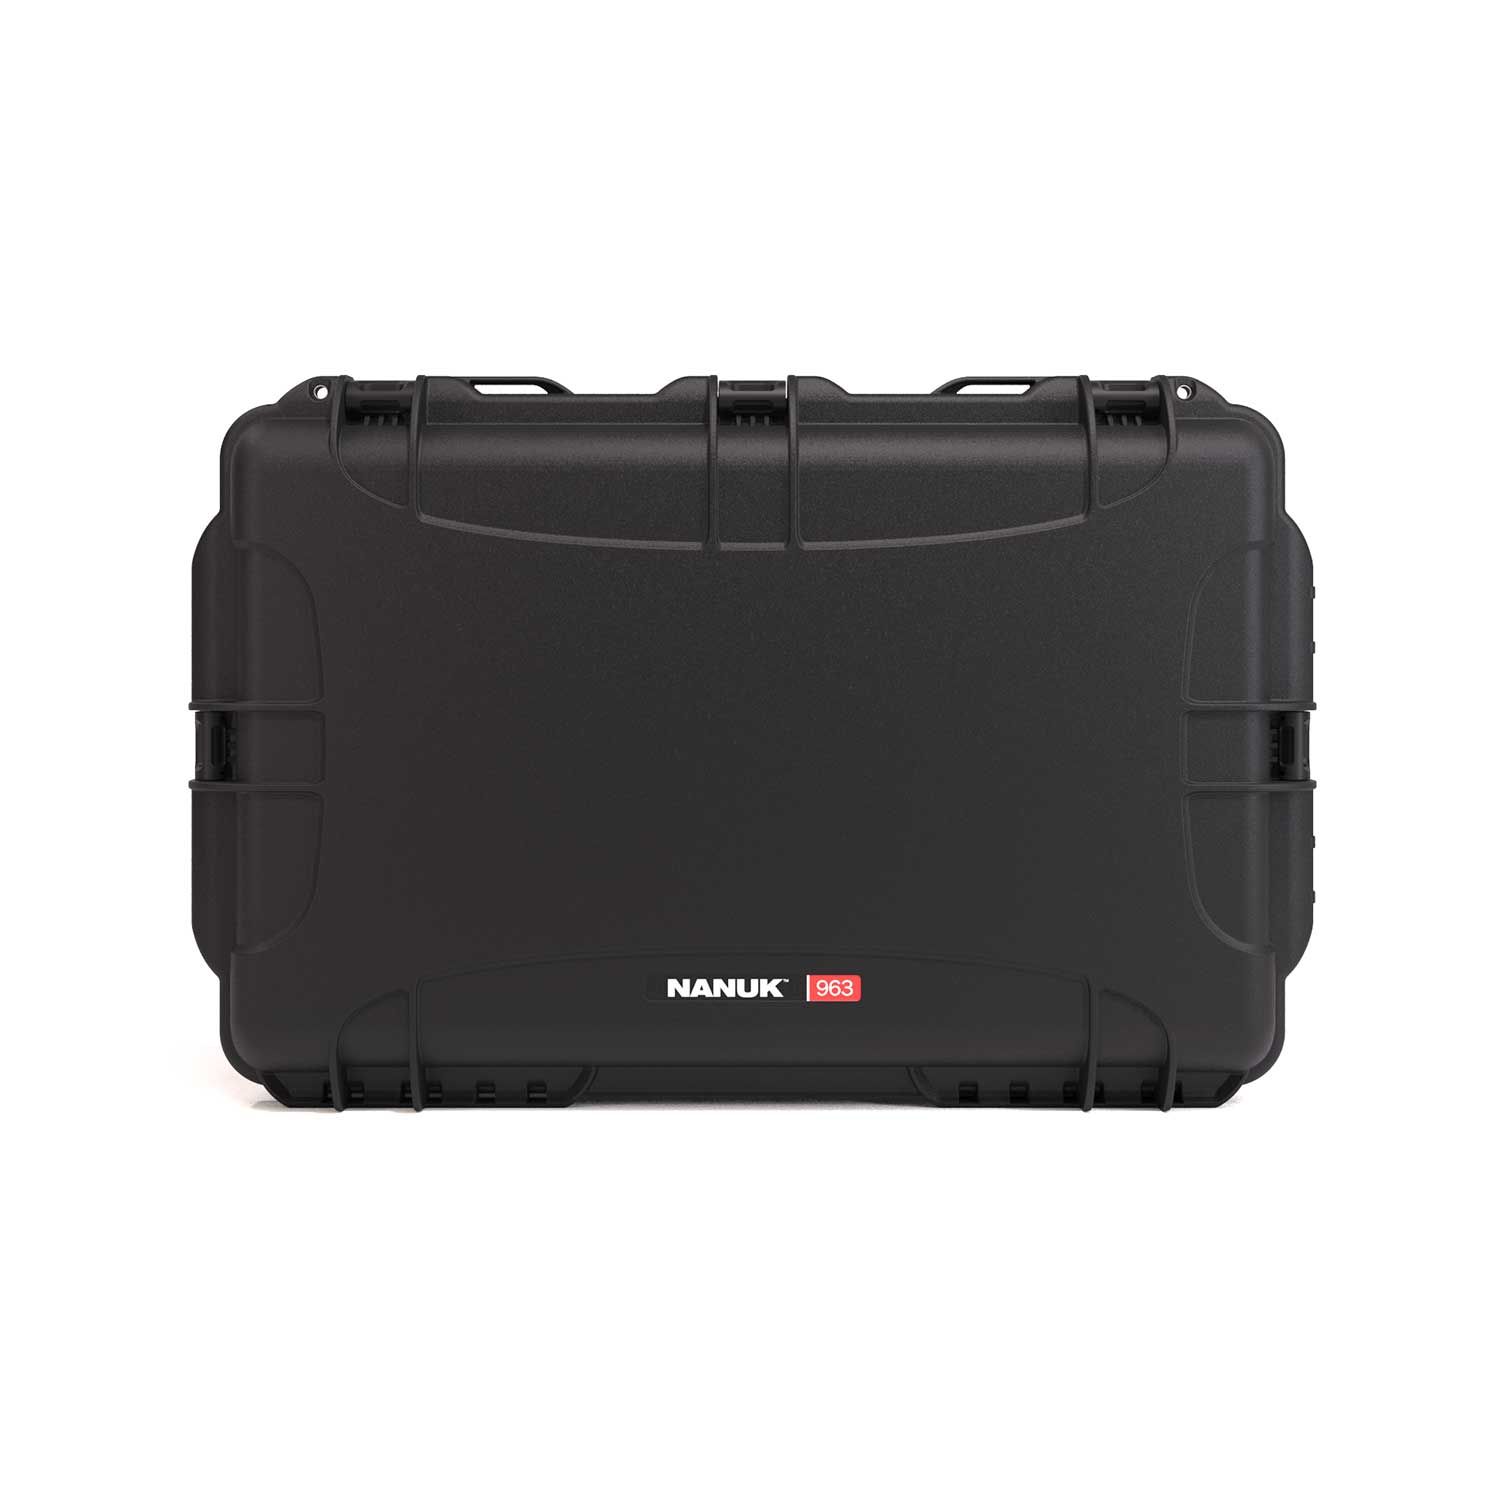 NANUK 963 Hard Case Specification Front